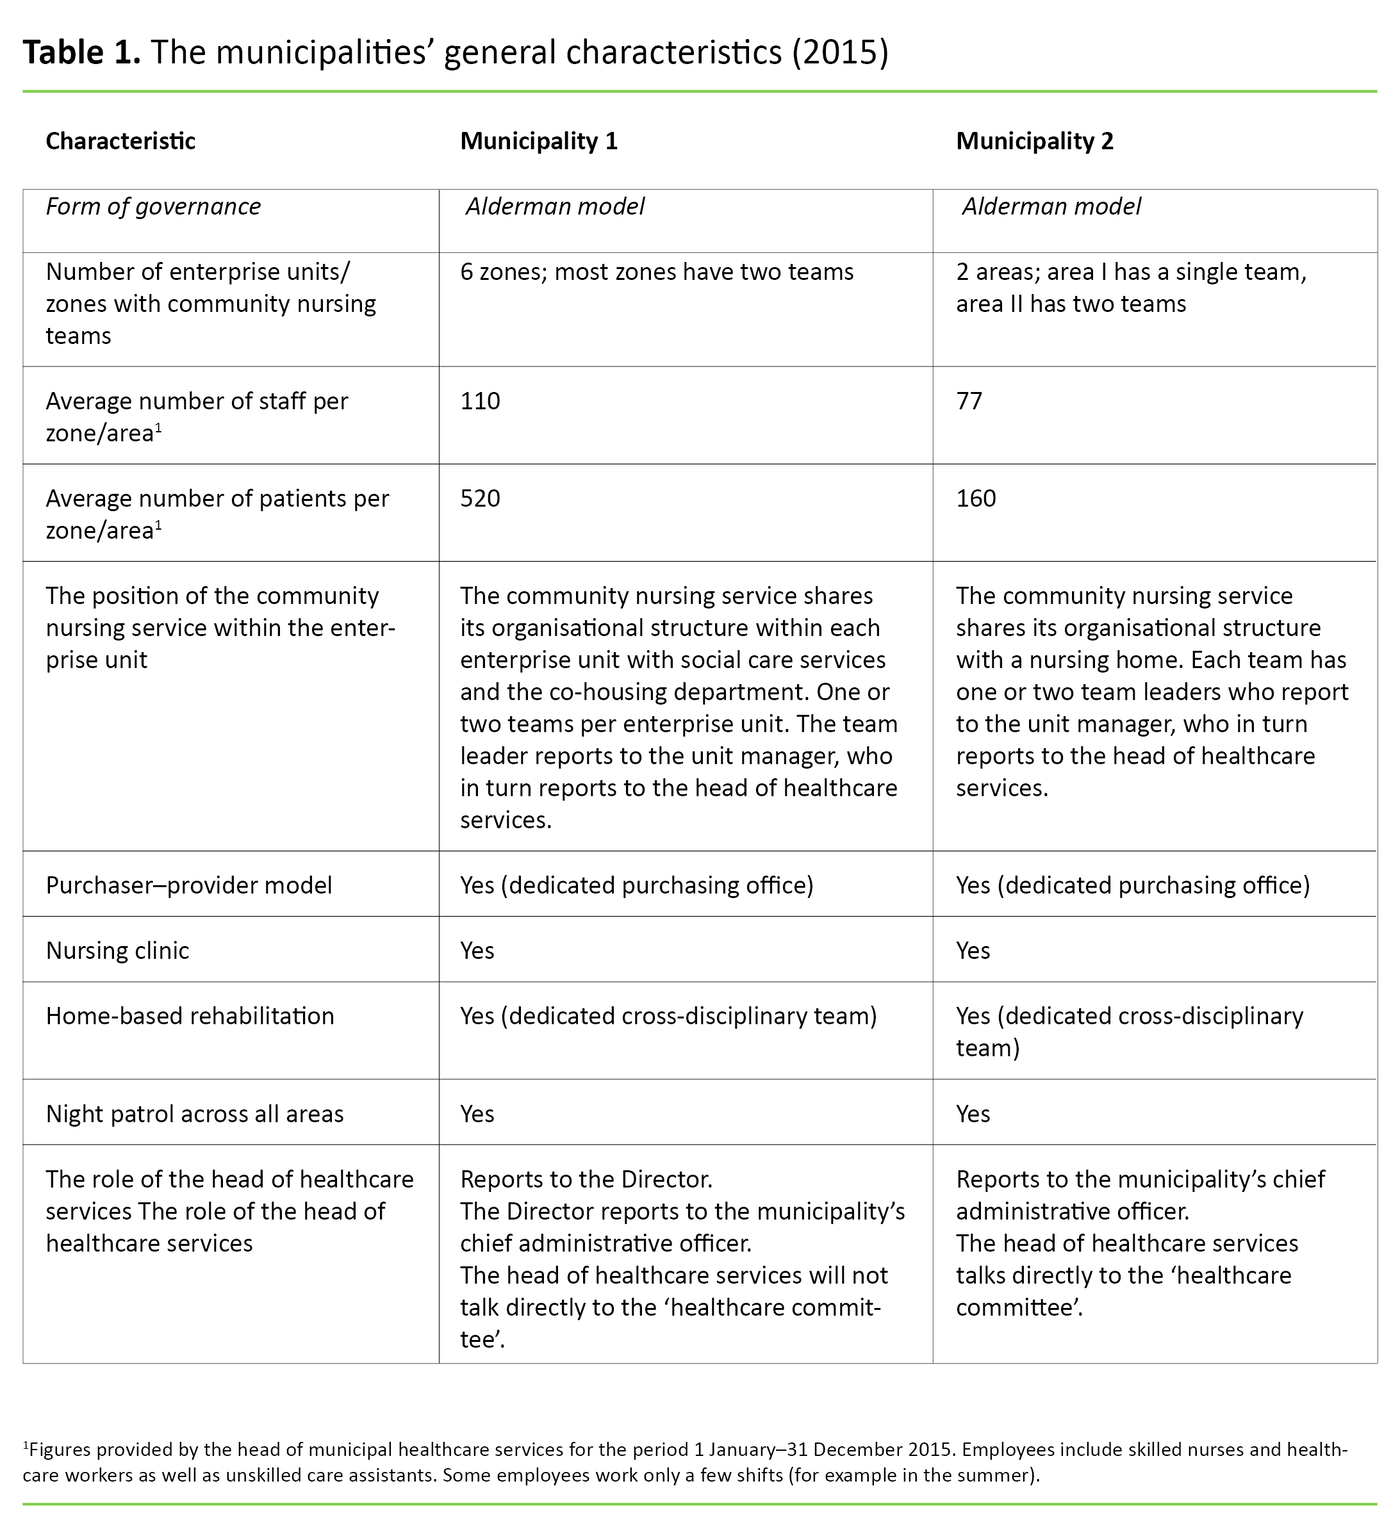 Table 1. The municipalities' general characteristics (2015)